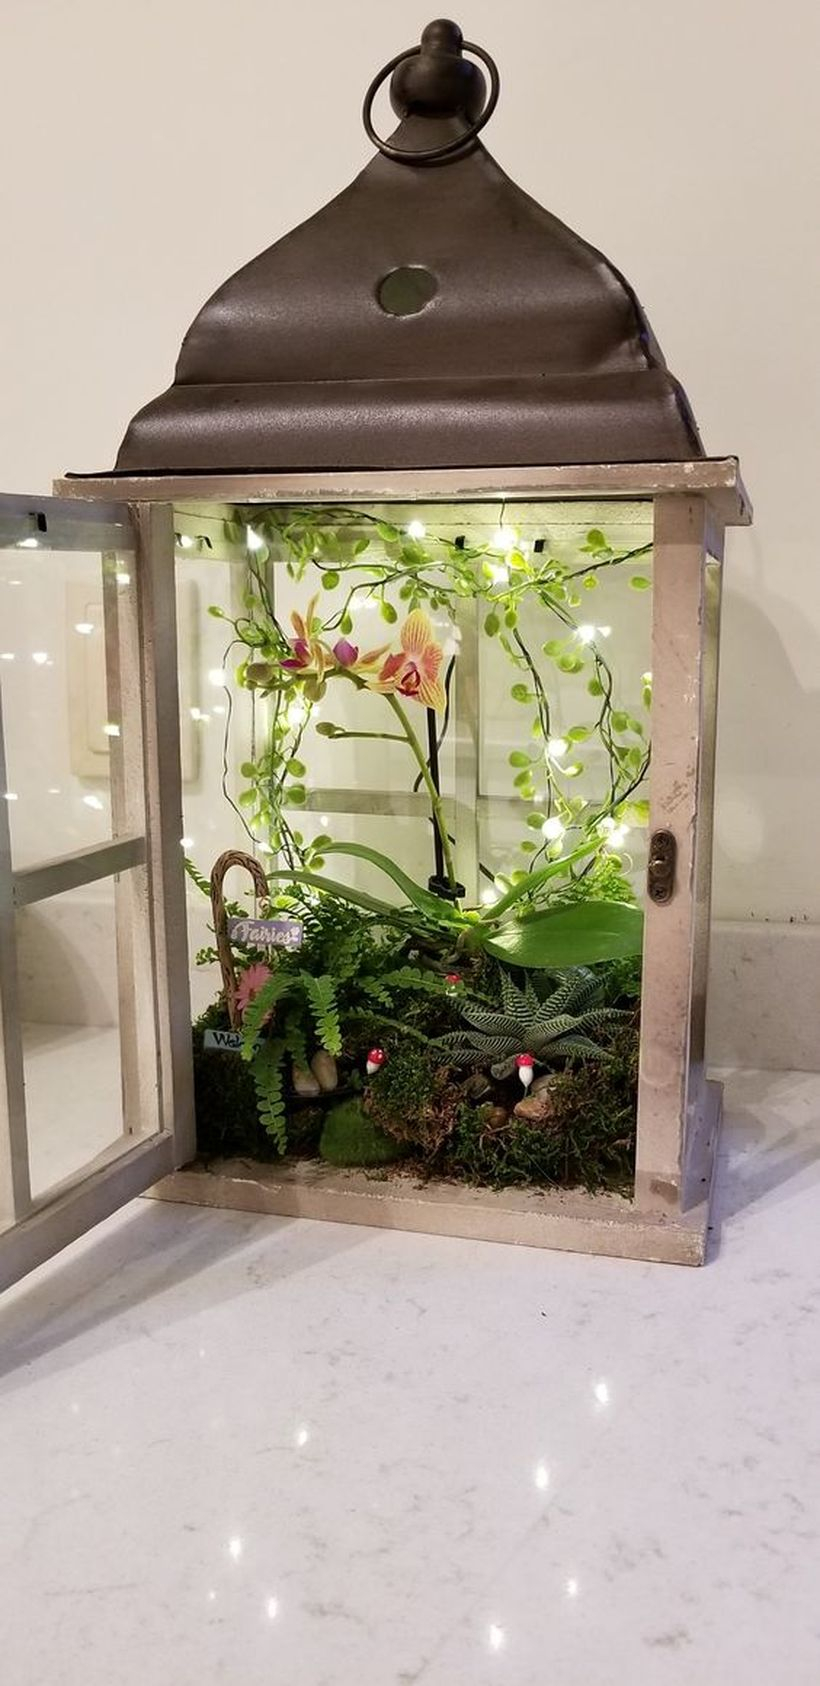 Simple lantern terrarium with small greenery and decorative lighting to create beautify the room